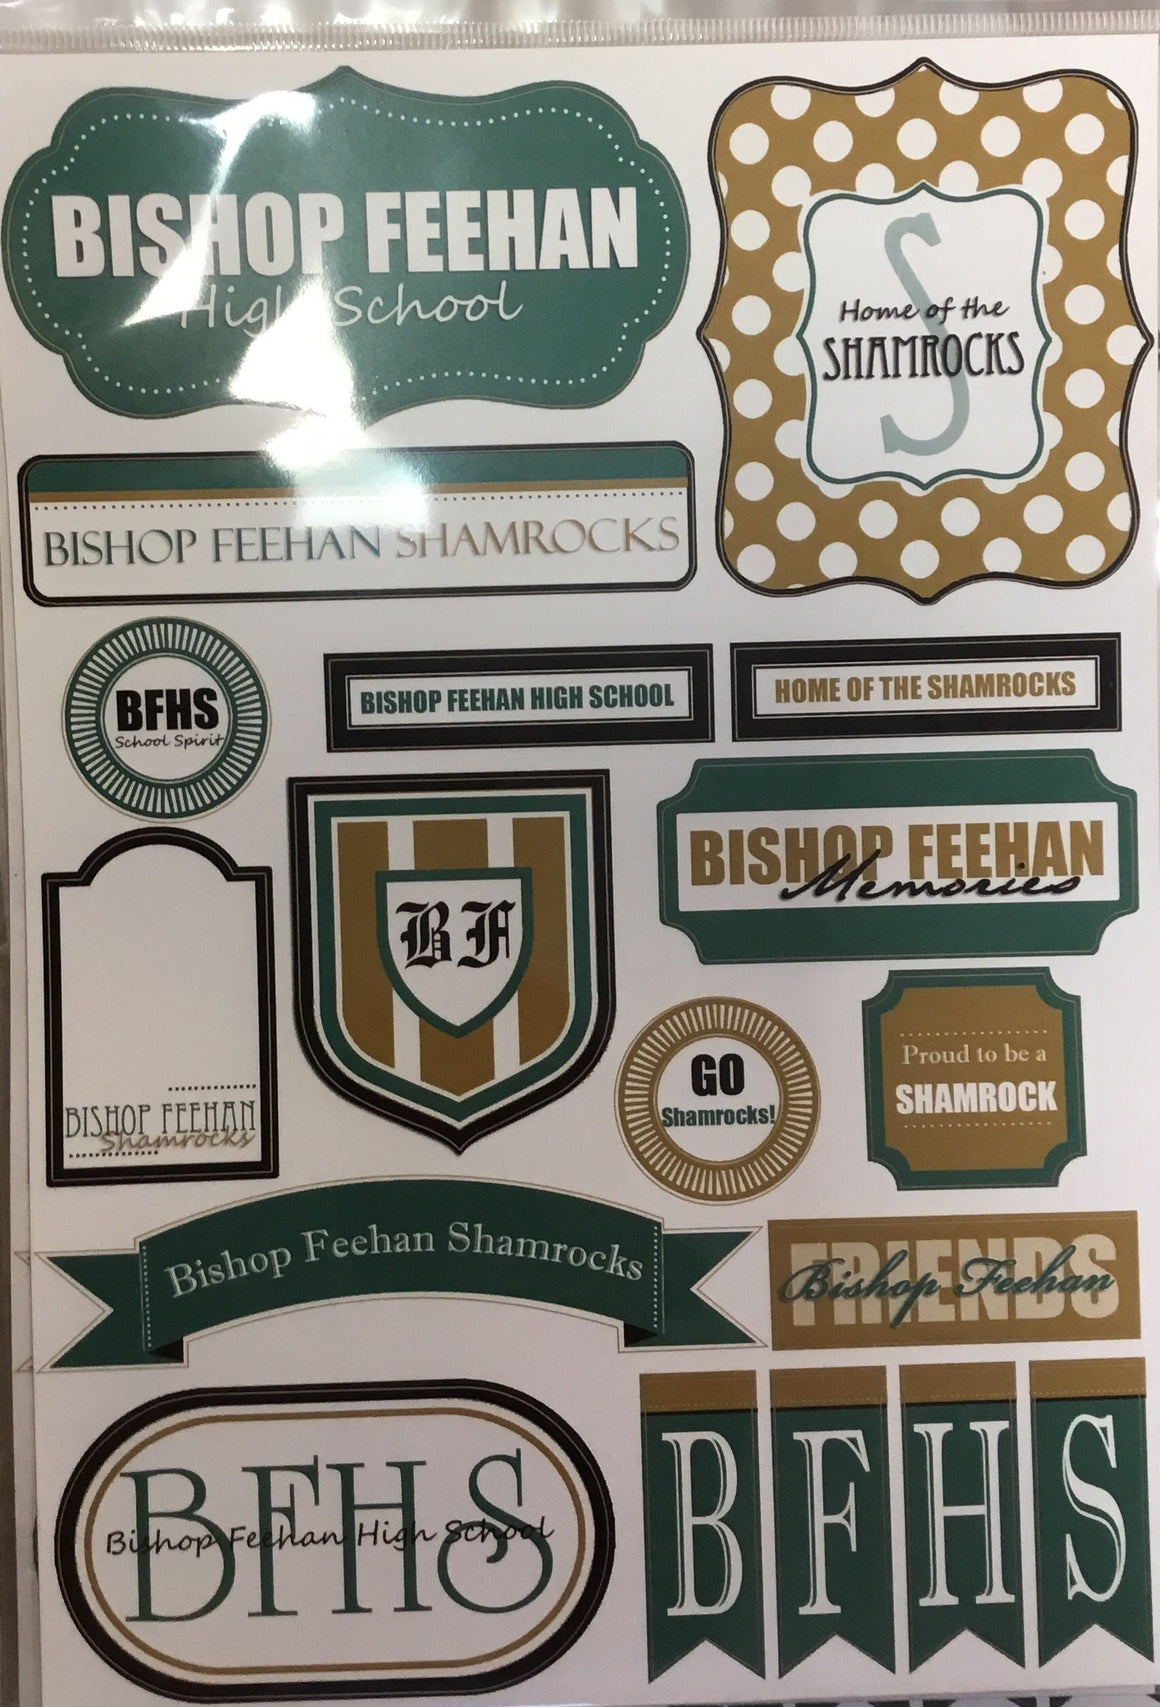 Bishop Feehan High School memories sticker sheet